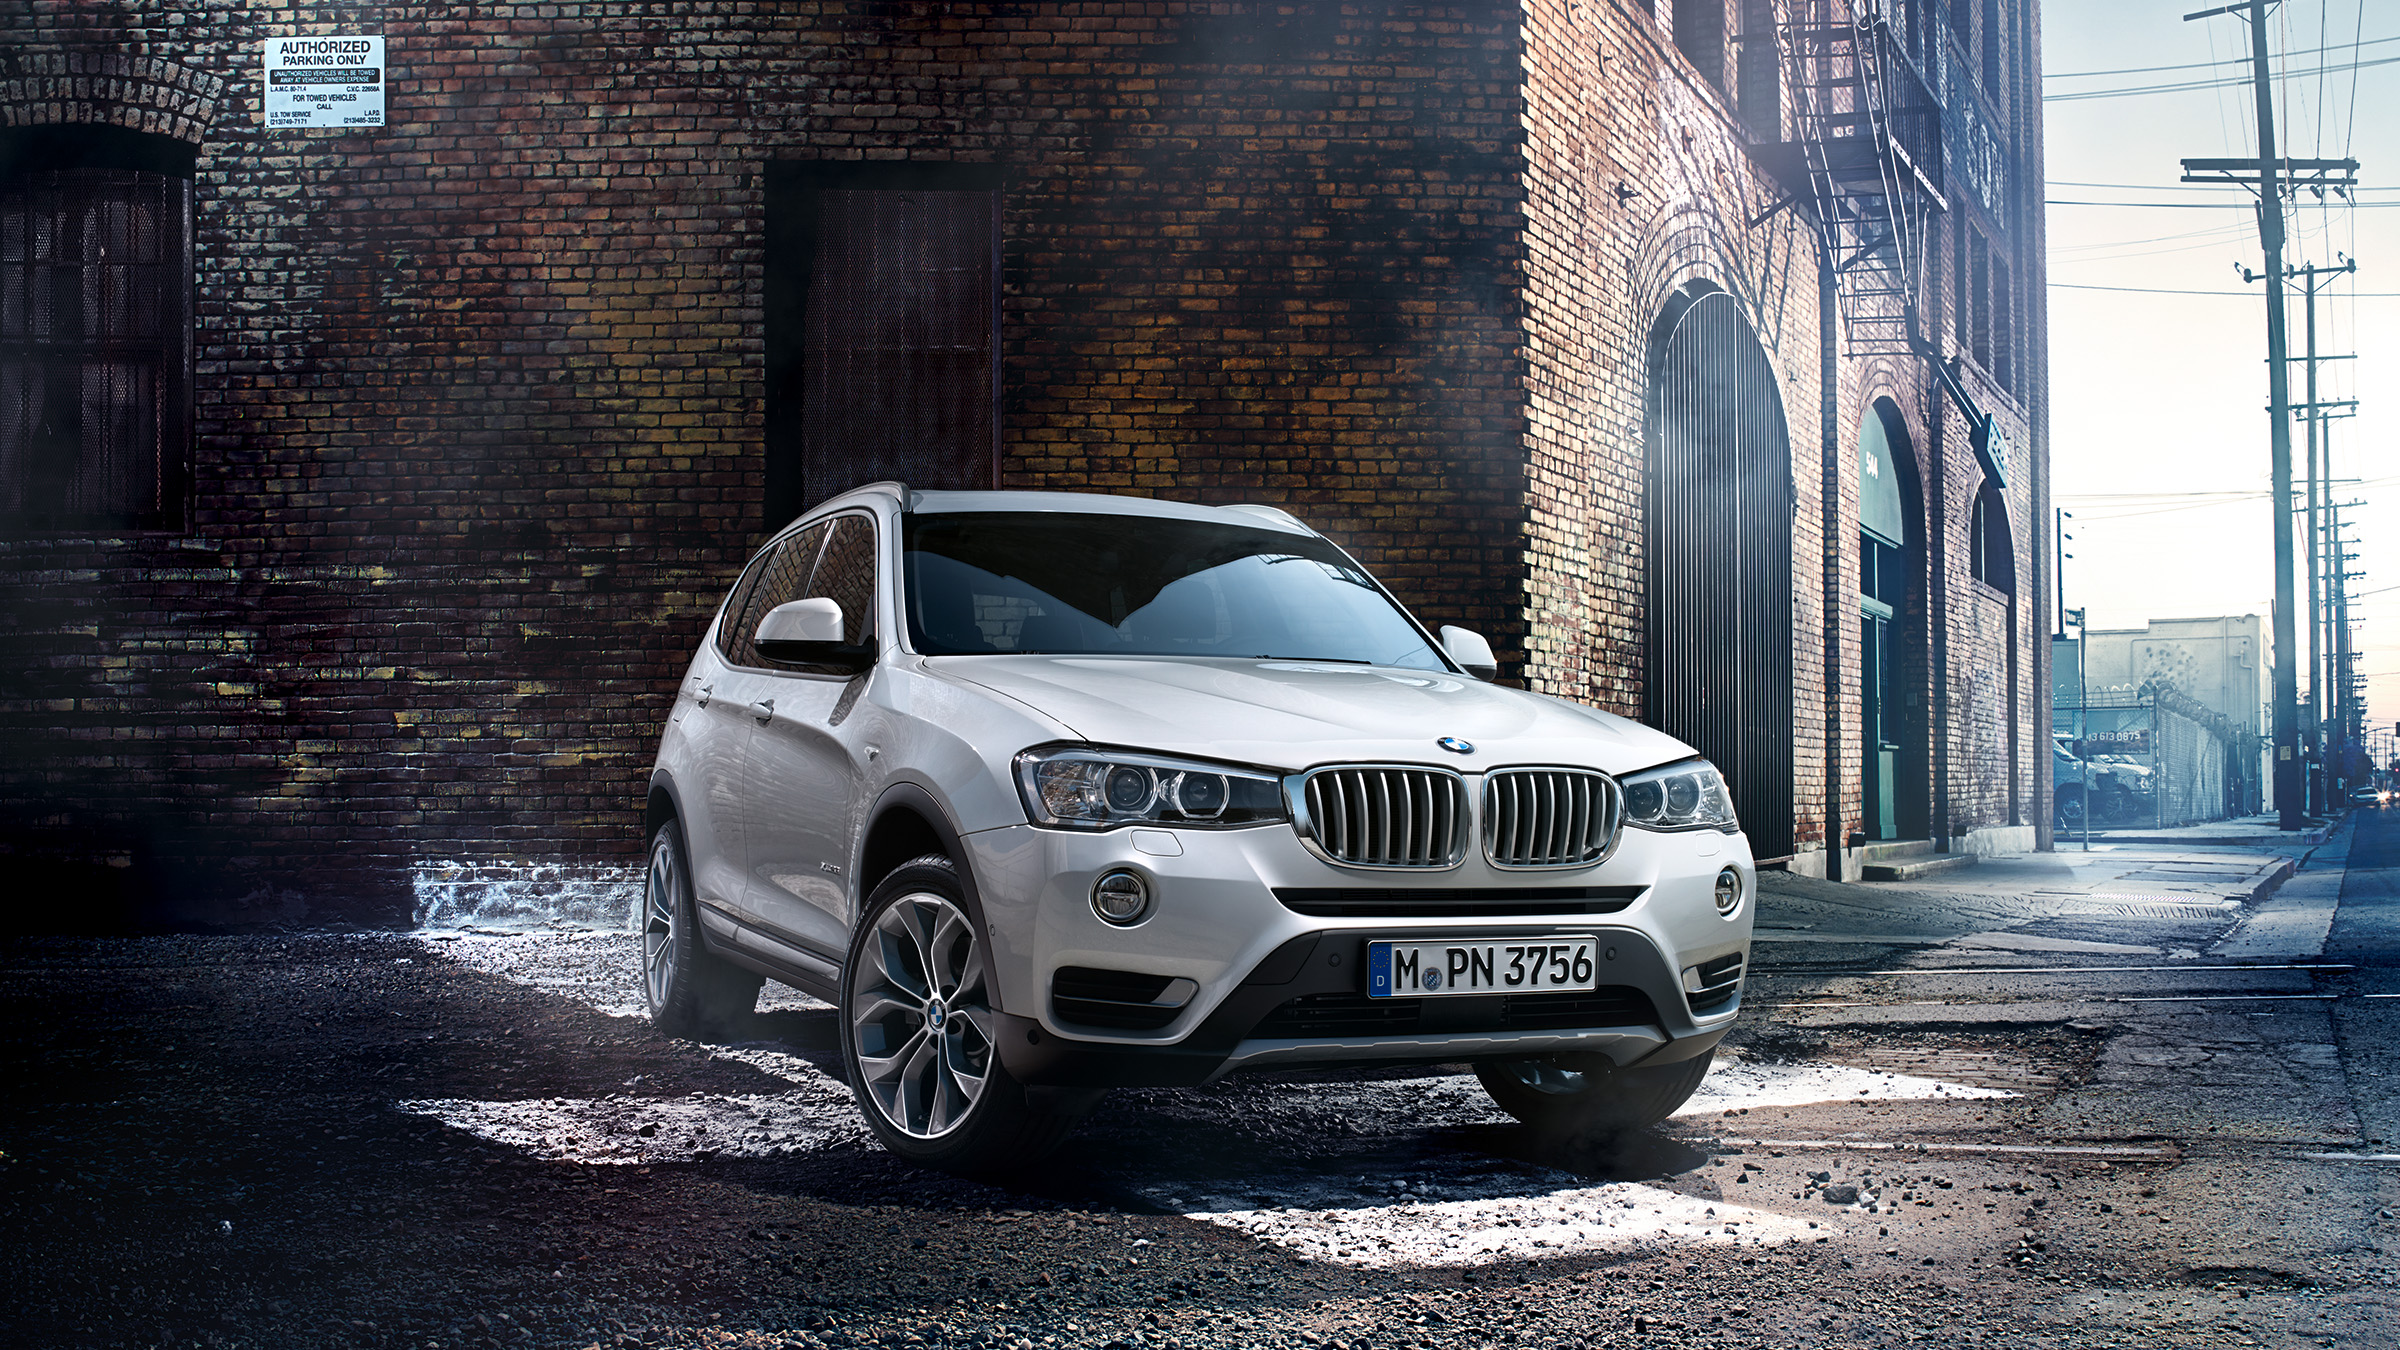 BMW_X_RANGE_EMIR_HAVERIC_05_2400